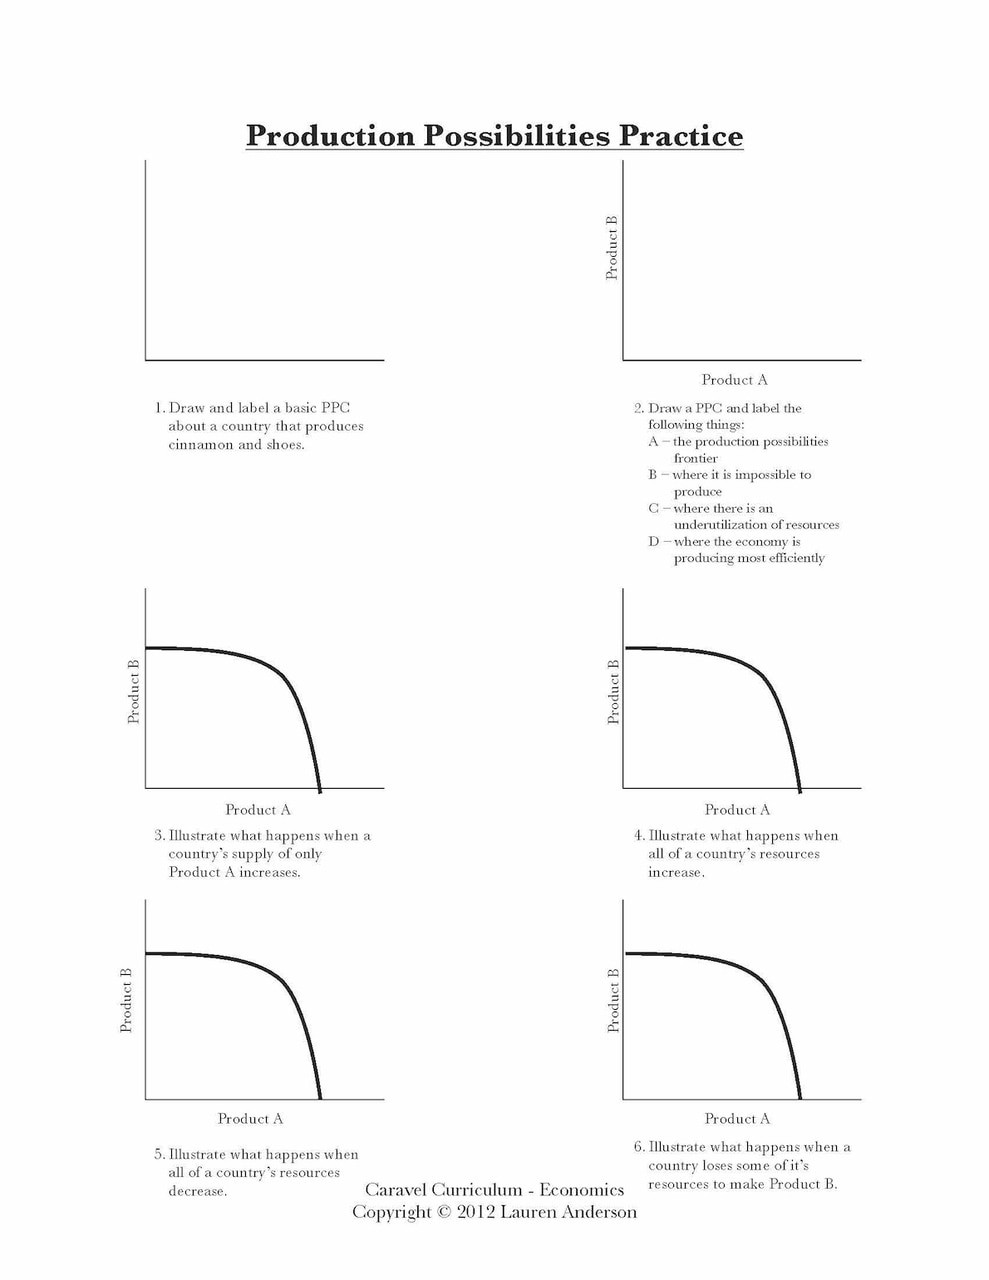 Production Possibilities Curve Worksheet Answers Production Possibilities Instructional Videos Guided Notes and Worksheet